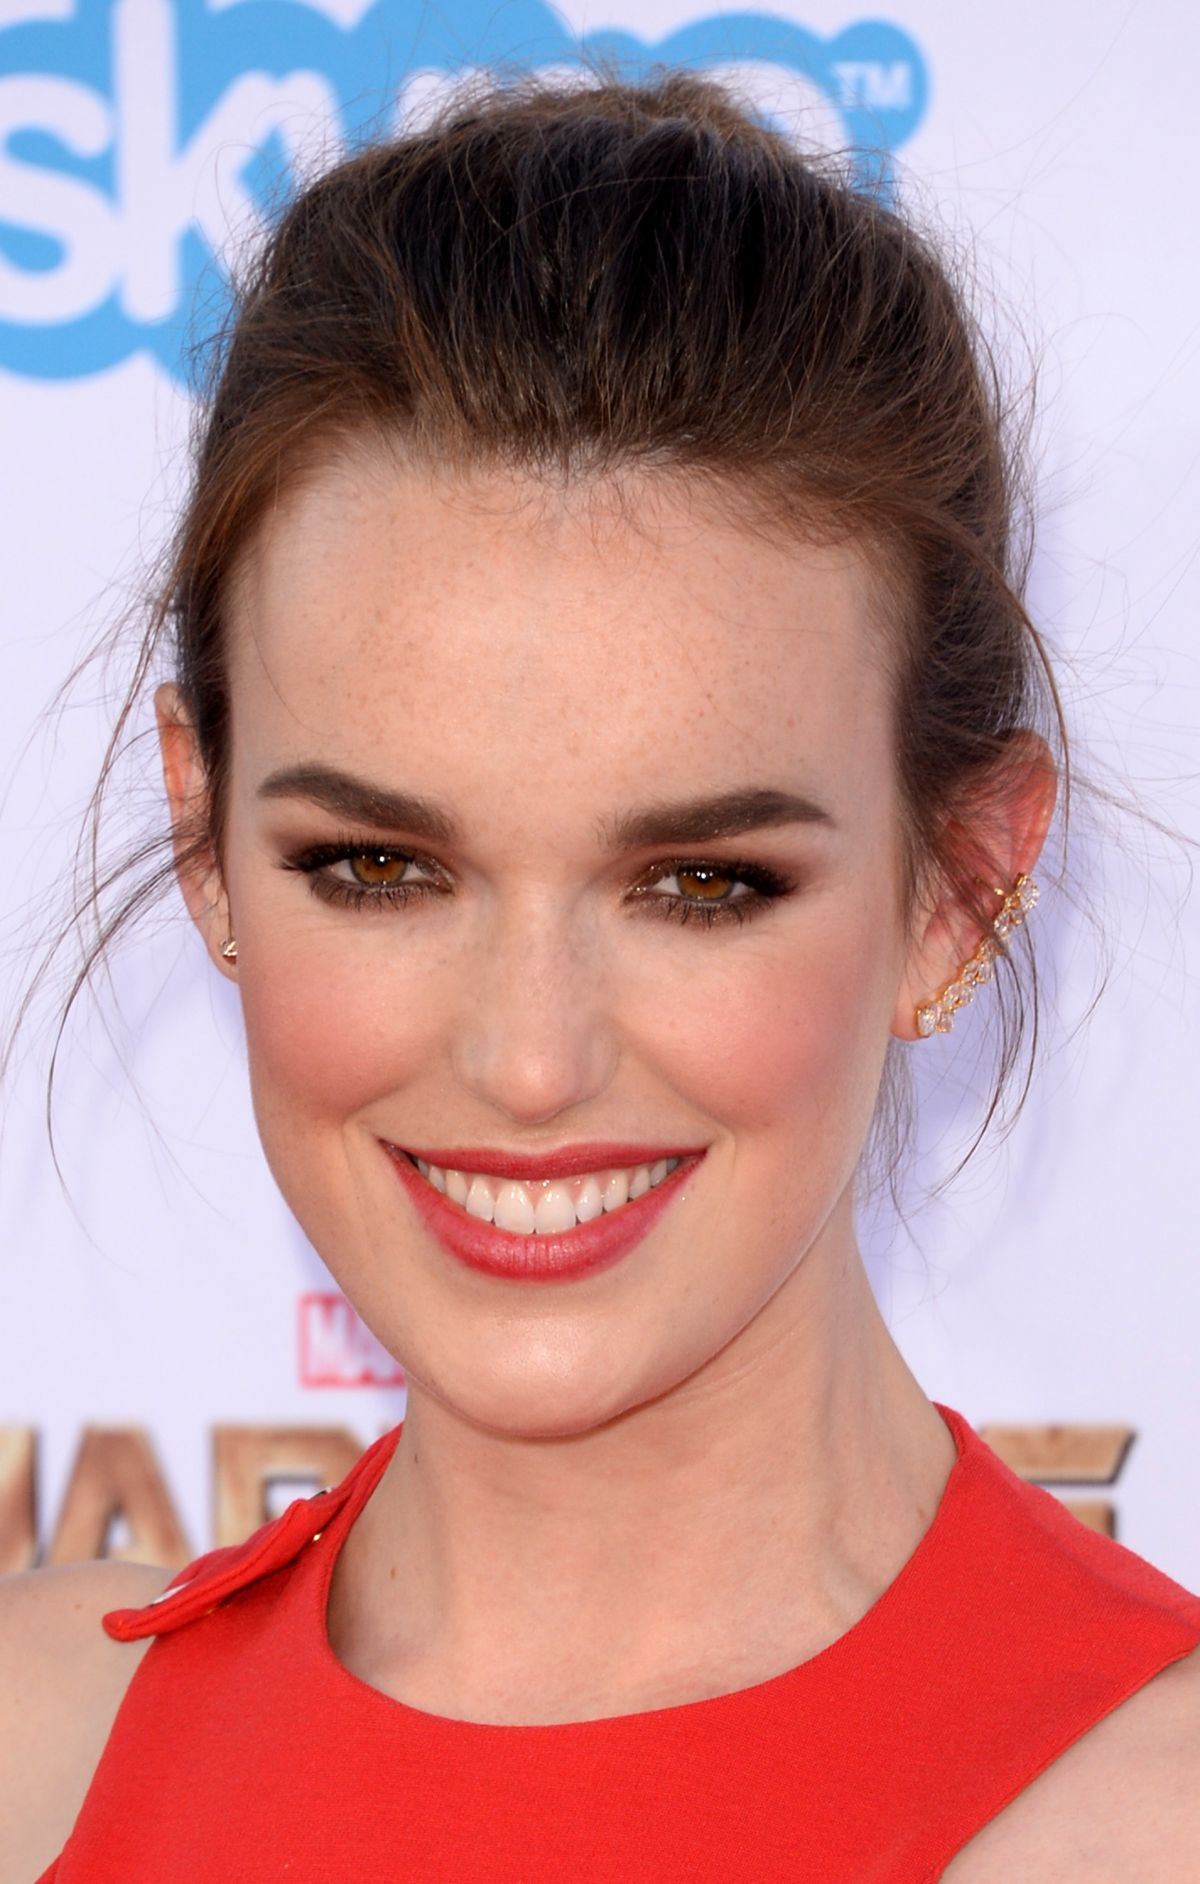 elizabeth henstridge fanelizabeth henstridge gif, elizabeth henstridge photoshoot, elizabeth henstridge tumblr, elizabeth henstridge listal, elizabeth henstridge site, elizabeth henstridge fan, elizabeth henstridge fansite, elizabeth henstridge gallery, elizabeth henstridge movie list, elizabeth henstridge danielle panabaker, elizabeth henstridge looks like, elizabeth henstridge hollyoaks, elizabeth henstridge instagram, elizabeth henstridge photo gallery, elizabeth henstridge twitter, elizabeth henstridge boyfriend, elizabeth henstridge wiki, elizabeth henstridge and zachary abel